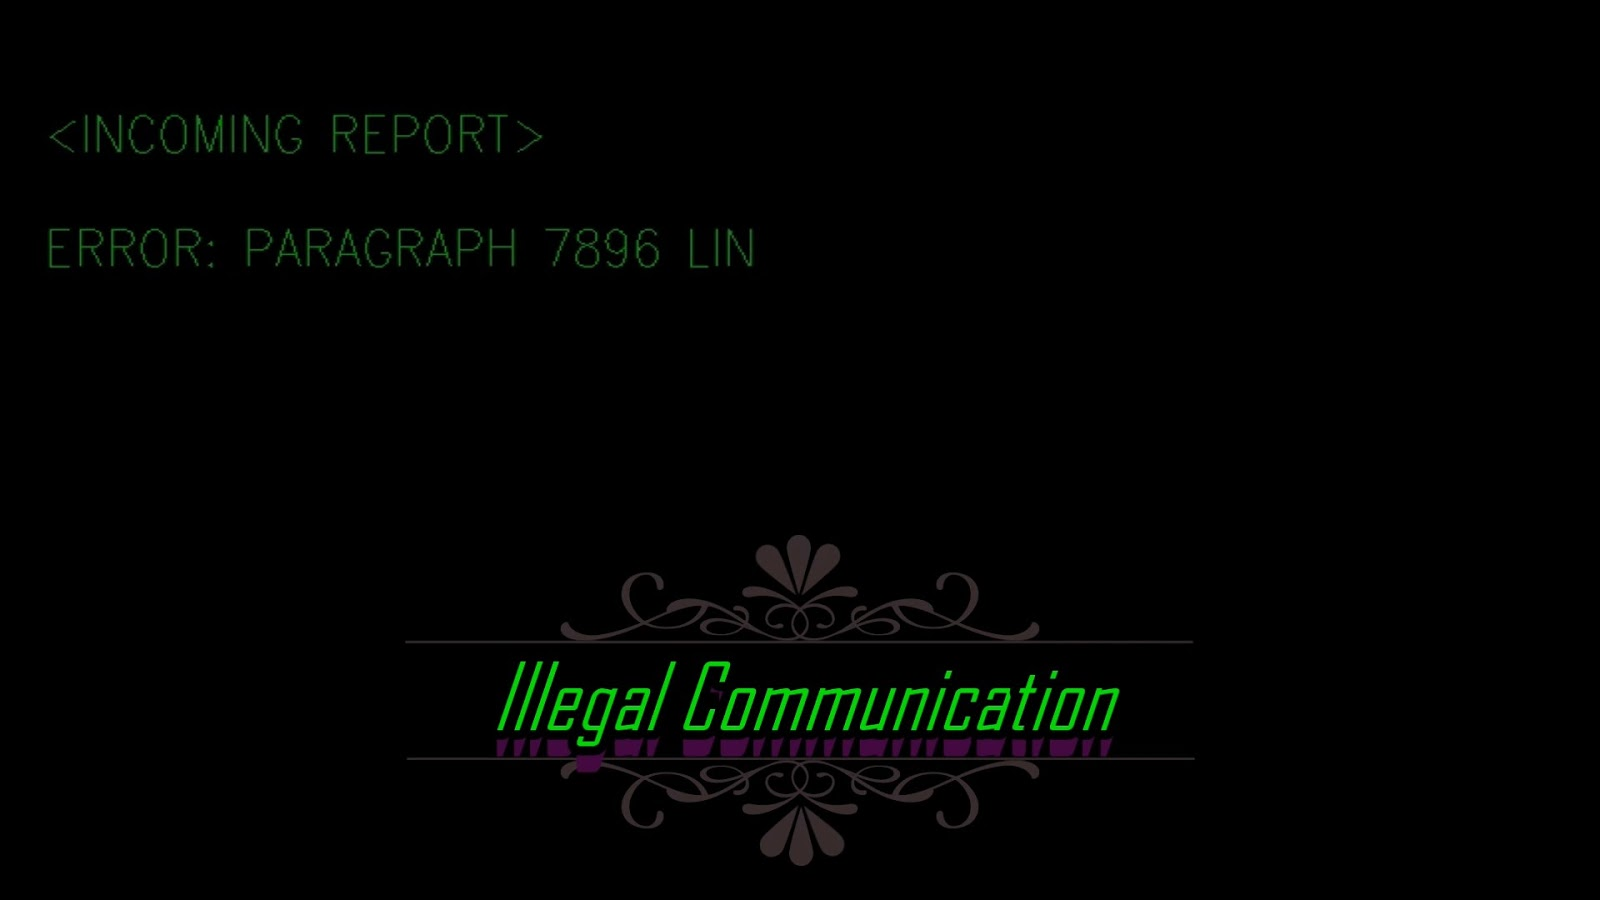 Illegal Communications (2006) When mouse sensitivity can